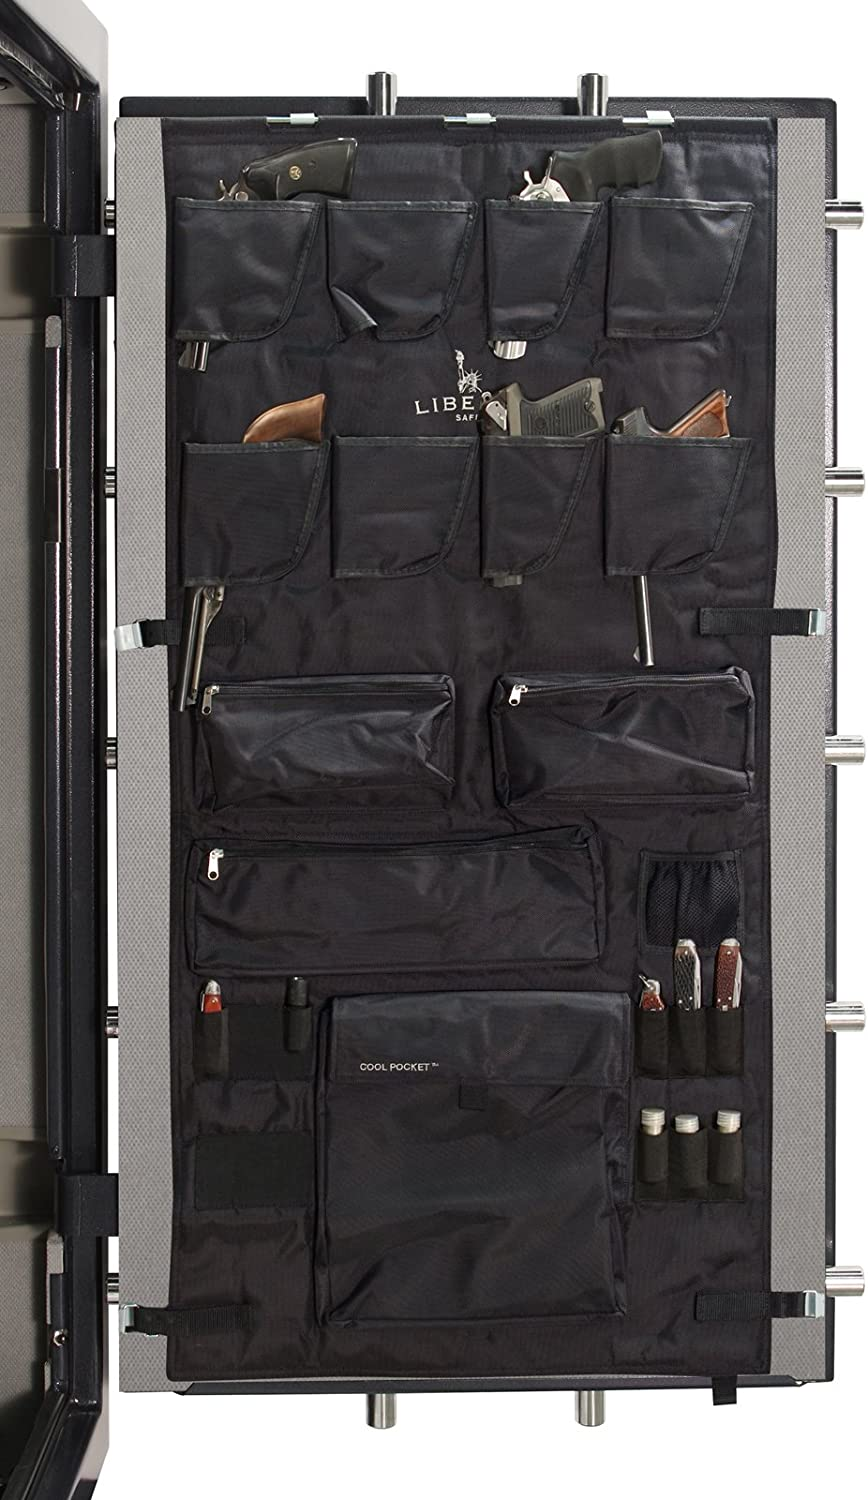 Liberty Door Panel - Fits Gun Safe Models 30-35-40 - Accessory and Organizer for Pistols, Handguns, Ammunition, Magazines, Choke Tubes and Other Security Products - Item 10586 - Black 81dsw3ngA2BLSL1500_